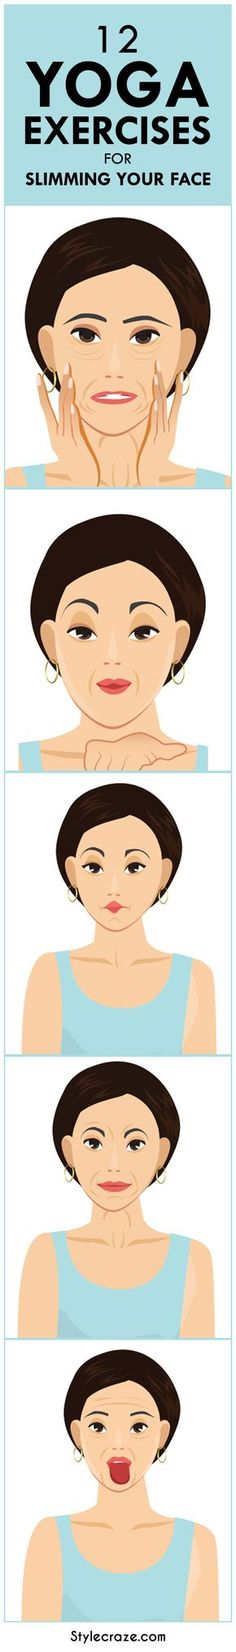 yoga-exercises-for-slimming-your-face/